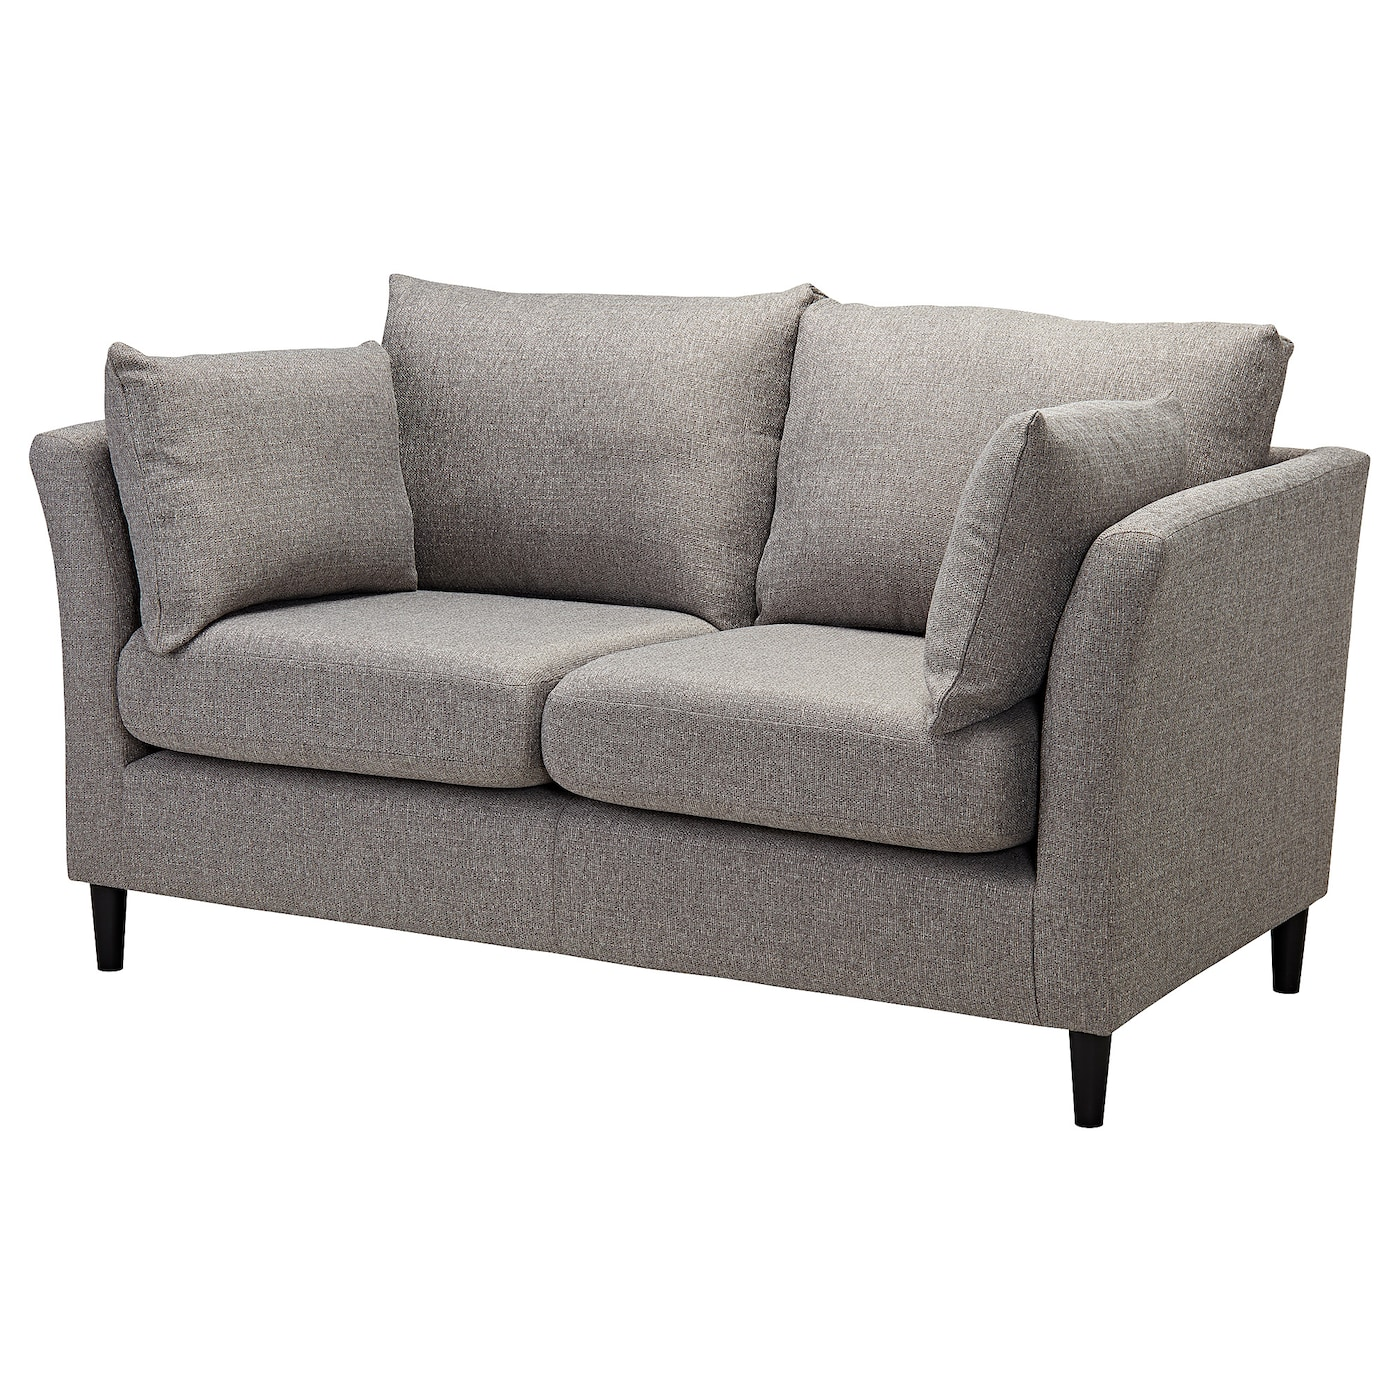 two seater corner sofa 2 seater sofas small seats ebay thesofa. Black Bedroom Furniture Sets. Home Design Ideas